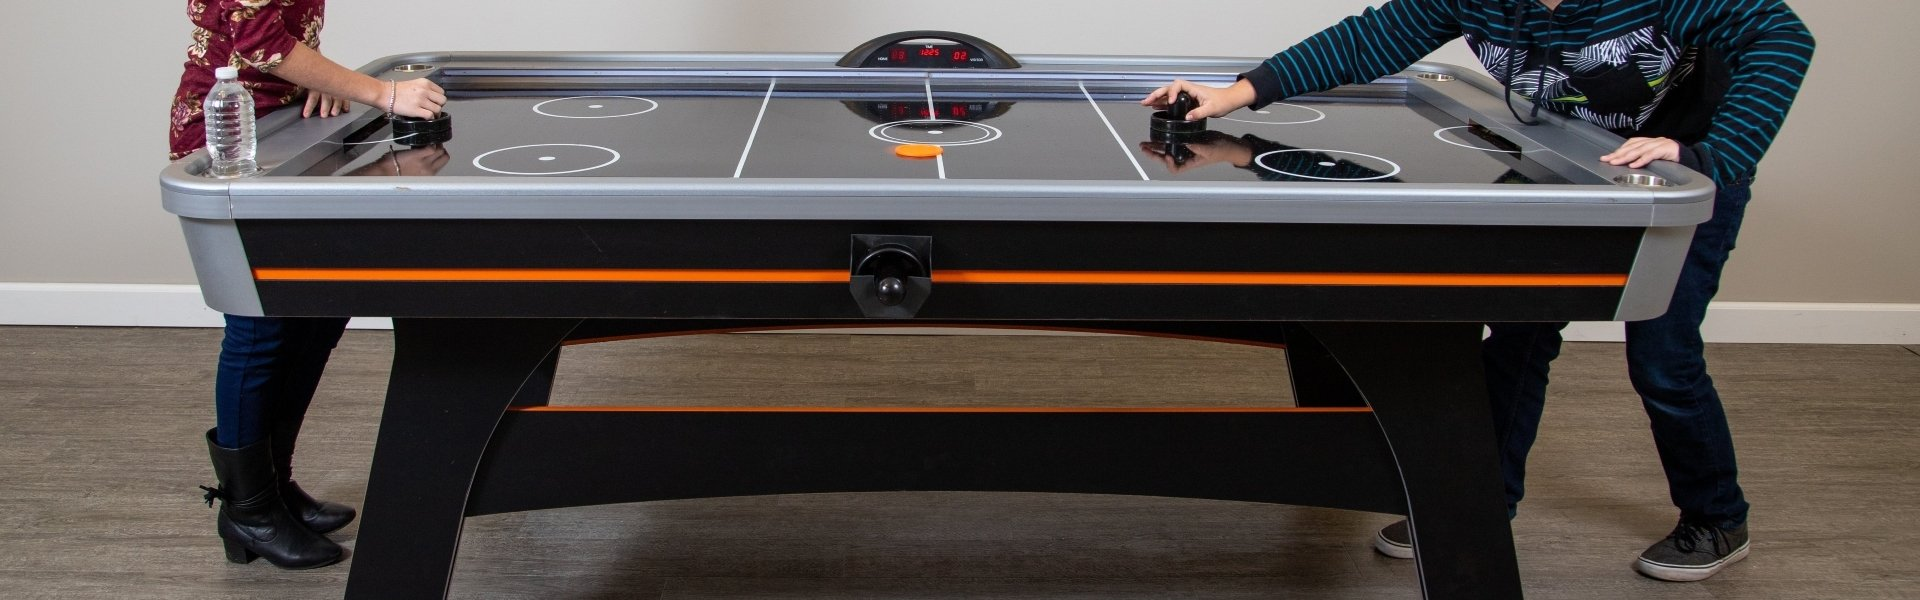 Best Air Hockey Tables for Kids Reviewed in Detail